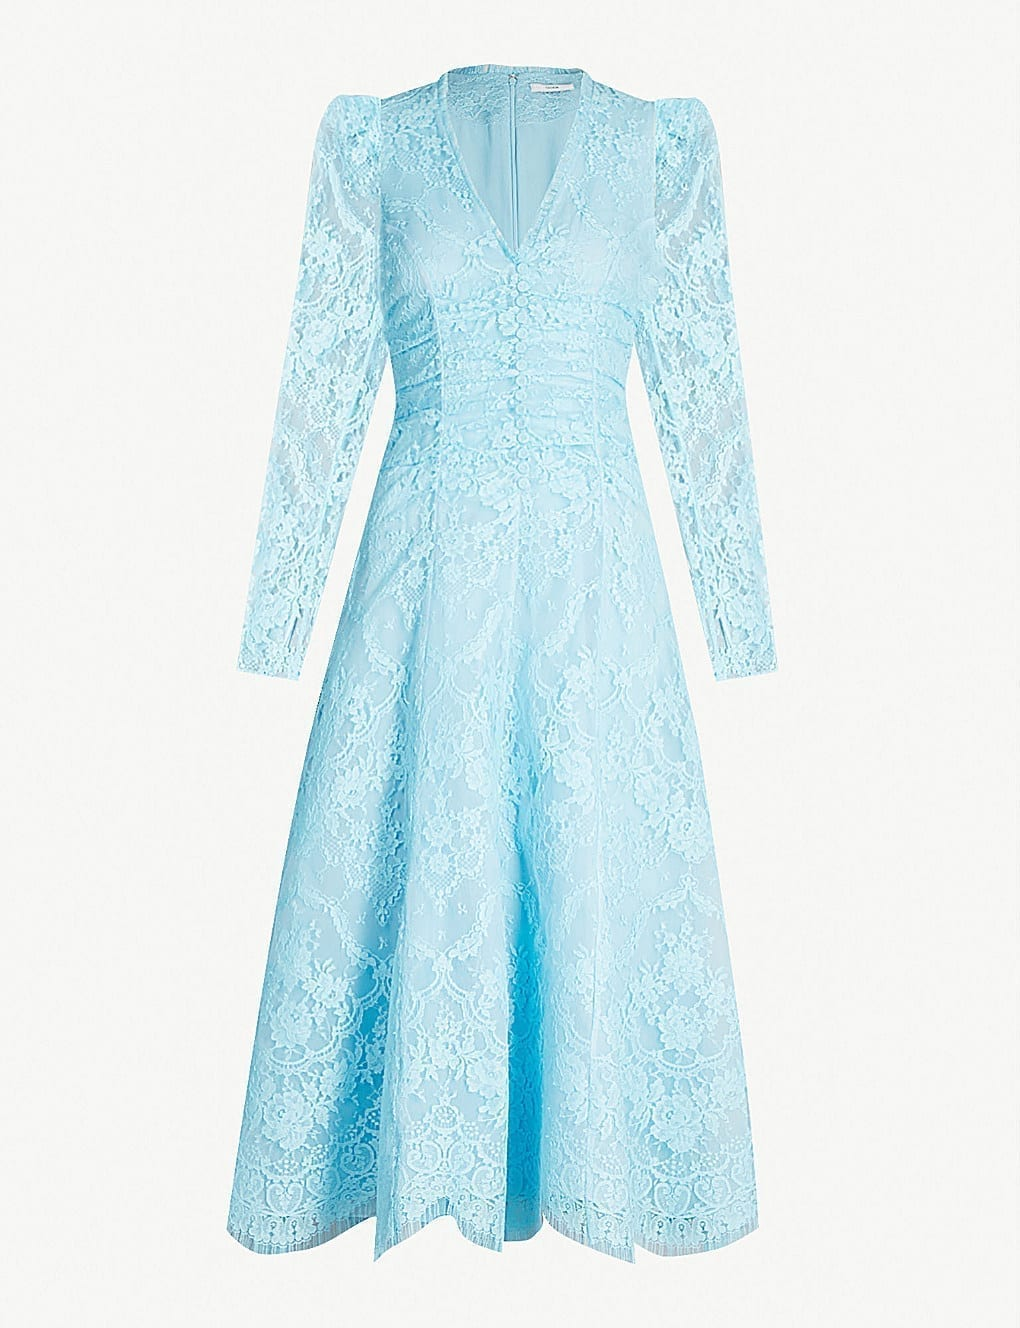 ERDEM Annalee Lace Midi Blue Dress